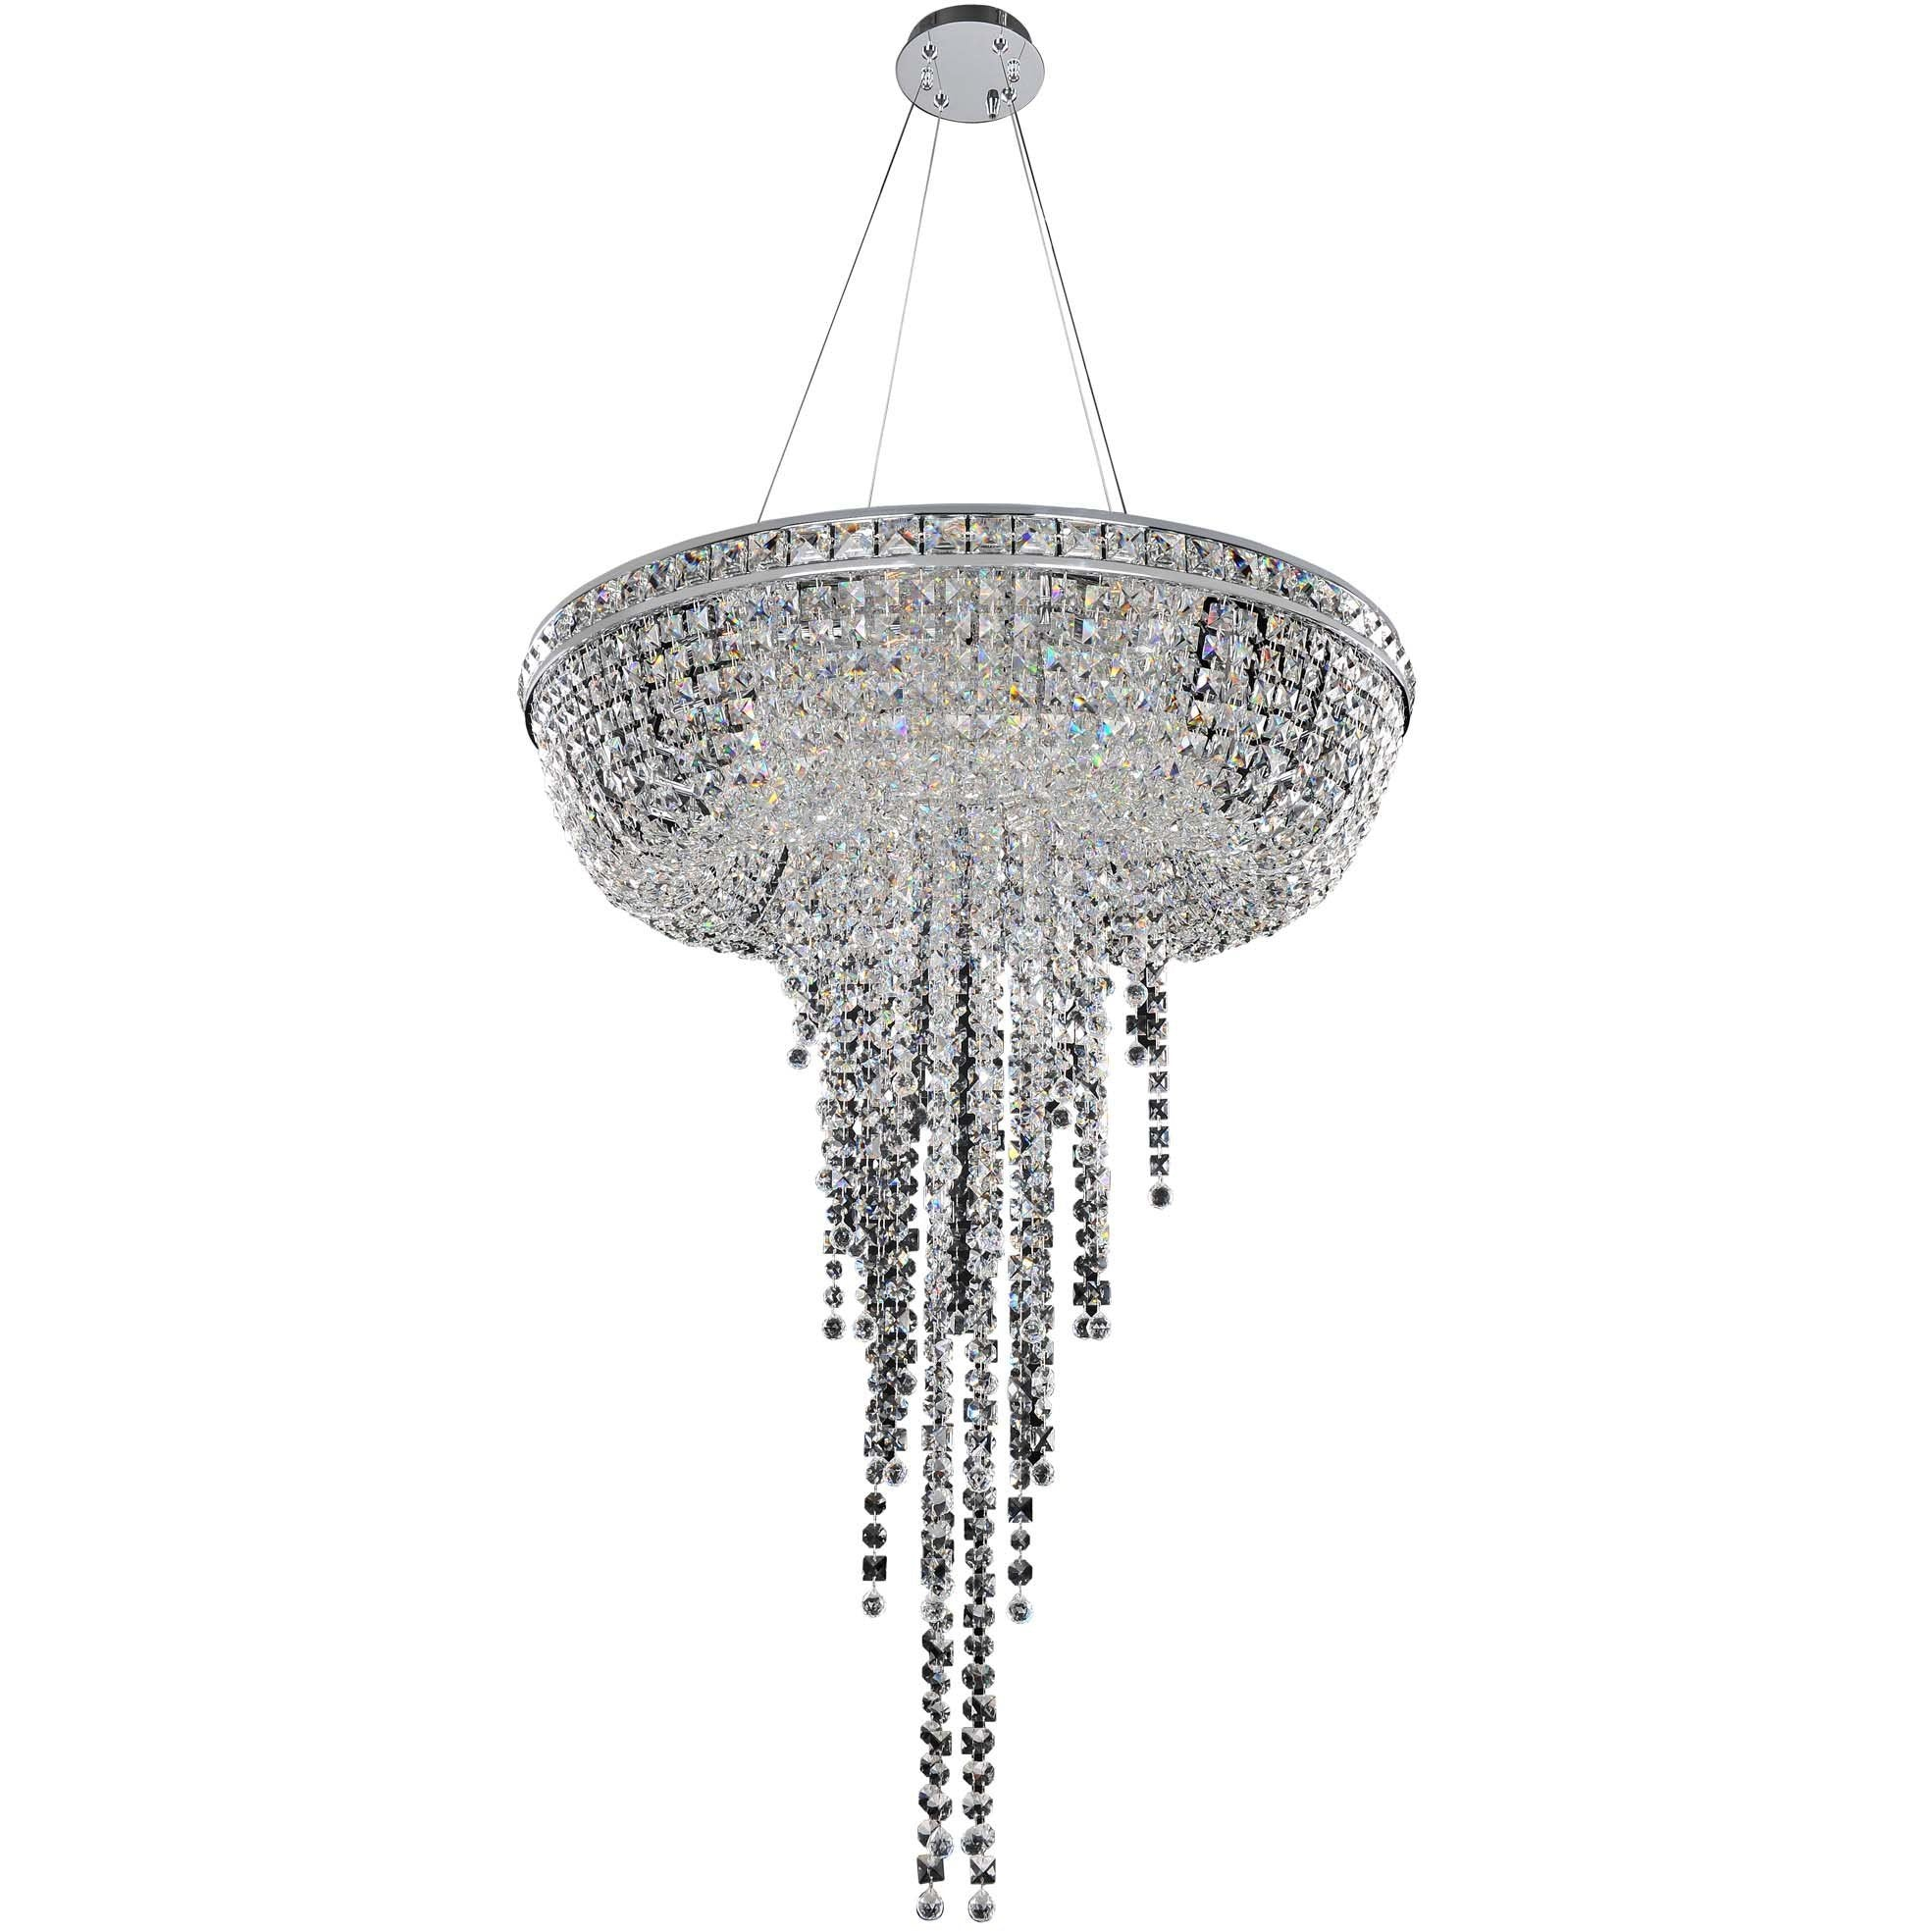 Allegri by Kalco Lighting Pendants Chrome / Firenze Clear Cascata 32 Inch Convertible Pendant - Flush Mount From Allegri by Kalco Lighting 027352